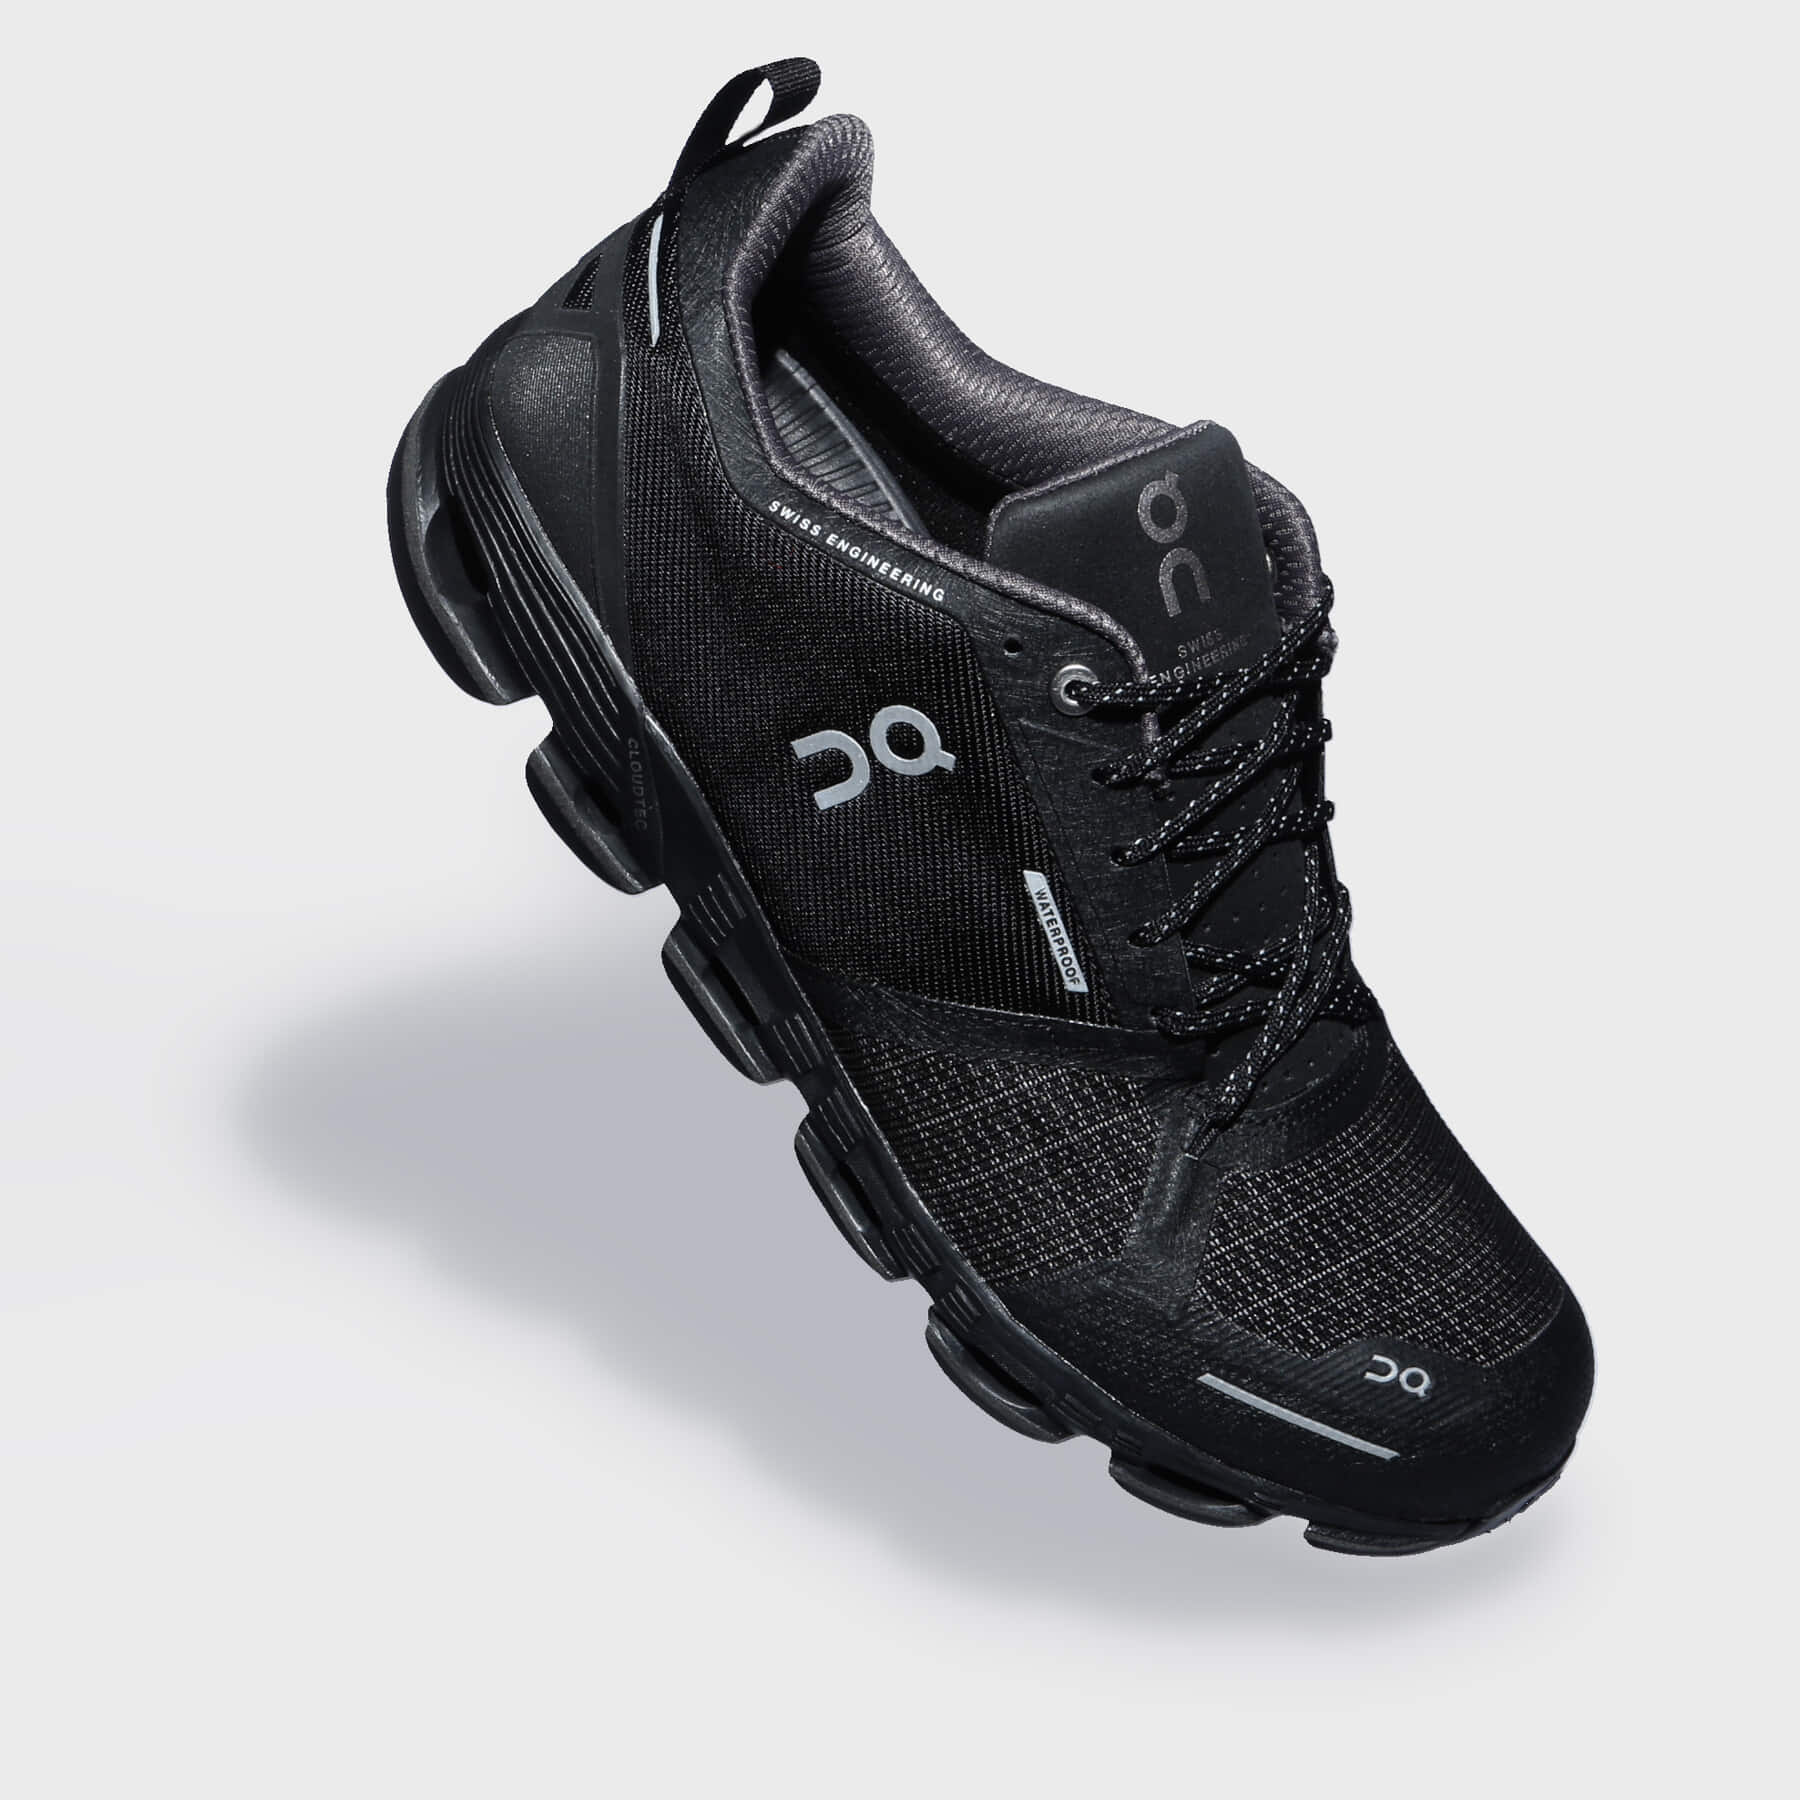 Cloudflyer%20waterproof%20black%20lunar